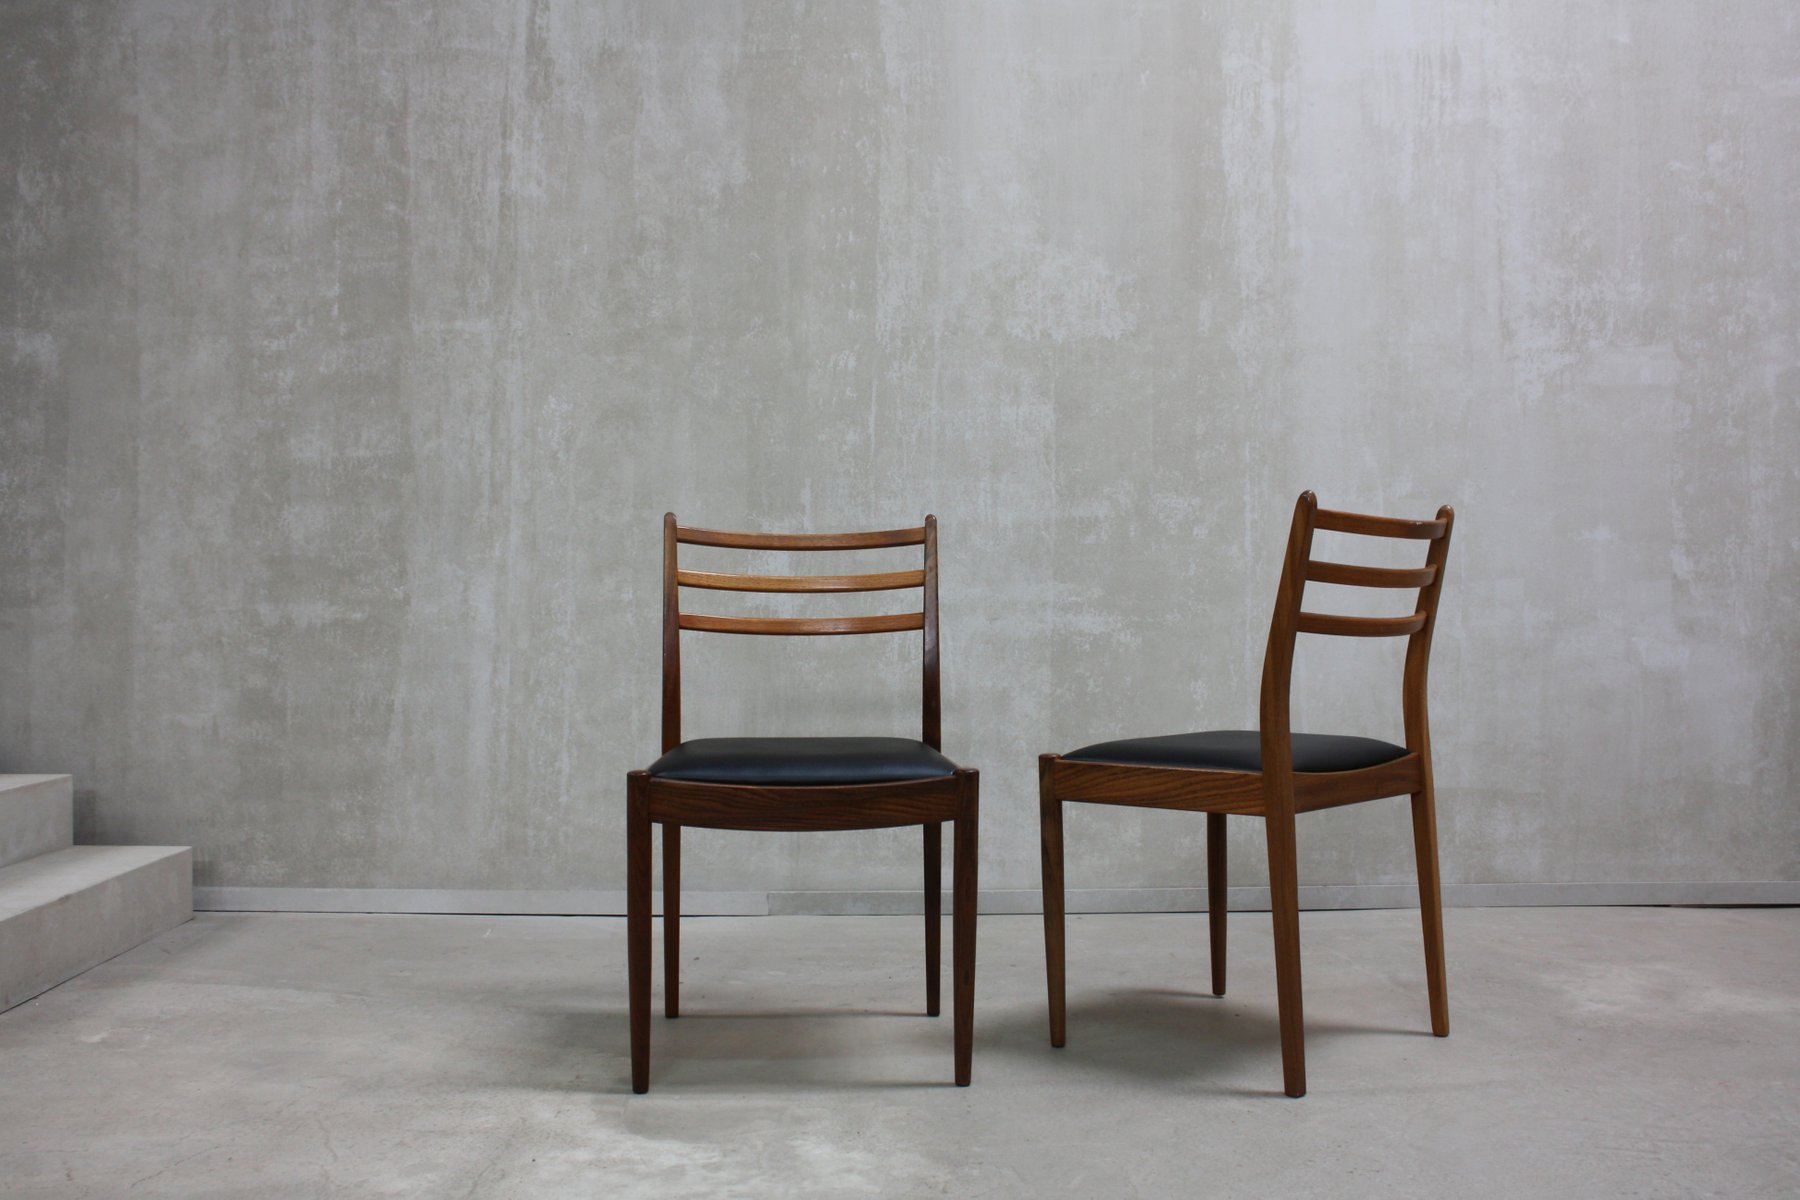 Teak dining chairs by victor wilkins for g plan 1960s for G plan dining room chairs